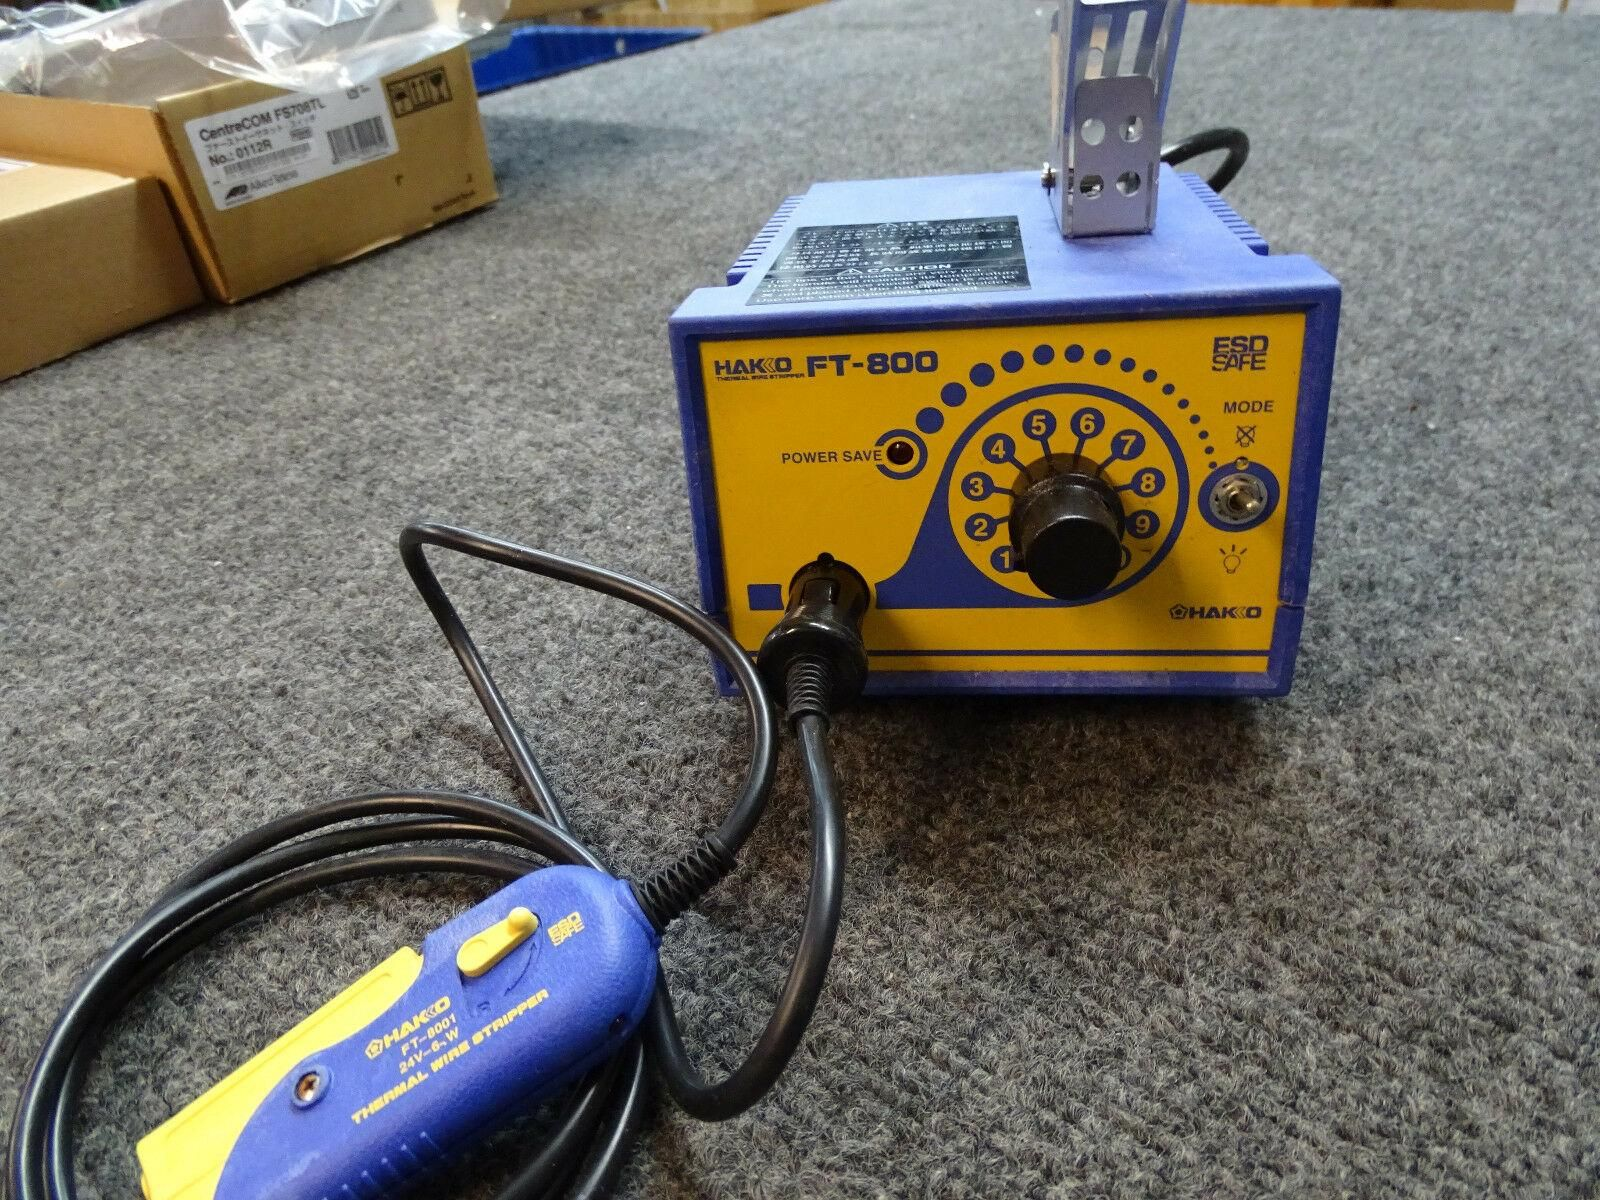 Hakko FT-800 Thermal Wire Stripper Station w/ FT-8001 Handpiece BRAND NEW.